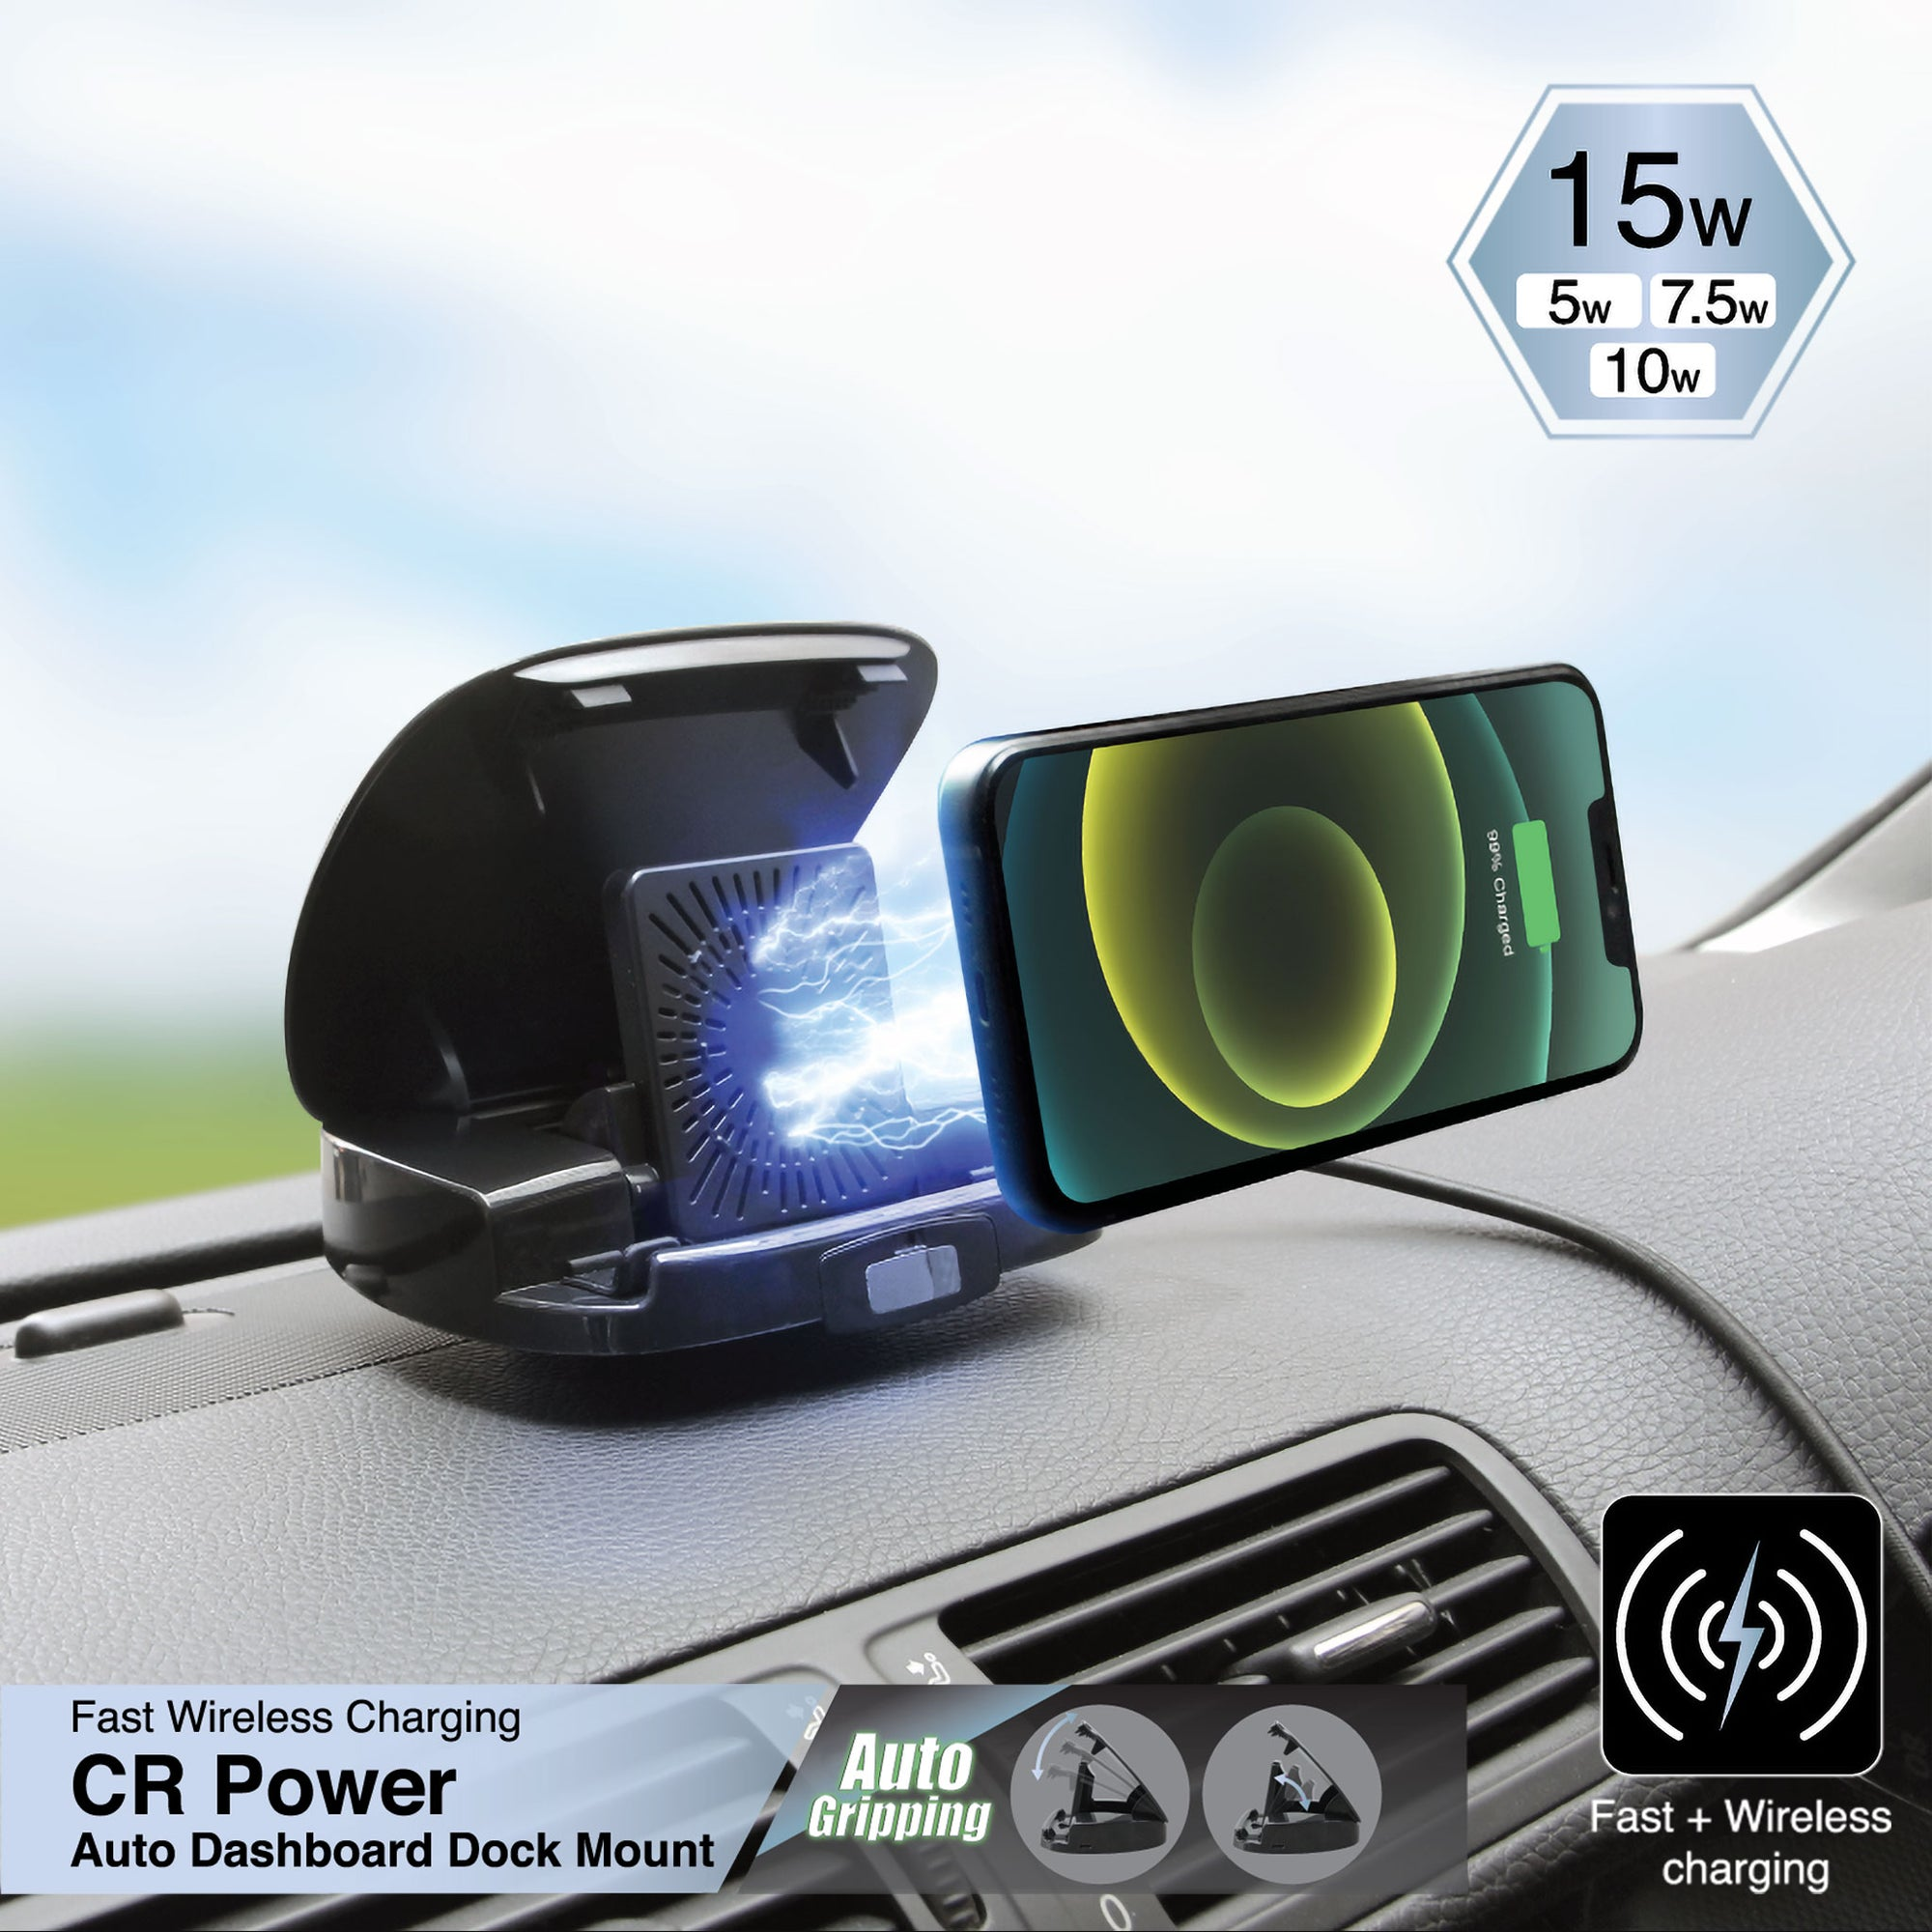 CR Power IR15 Wireless Charging Auto Dashboard Dock Car Mount